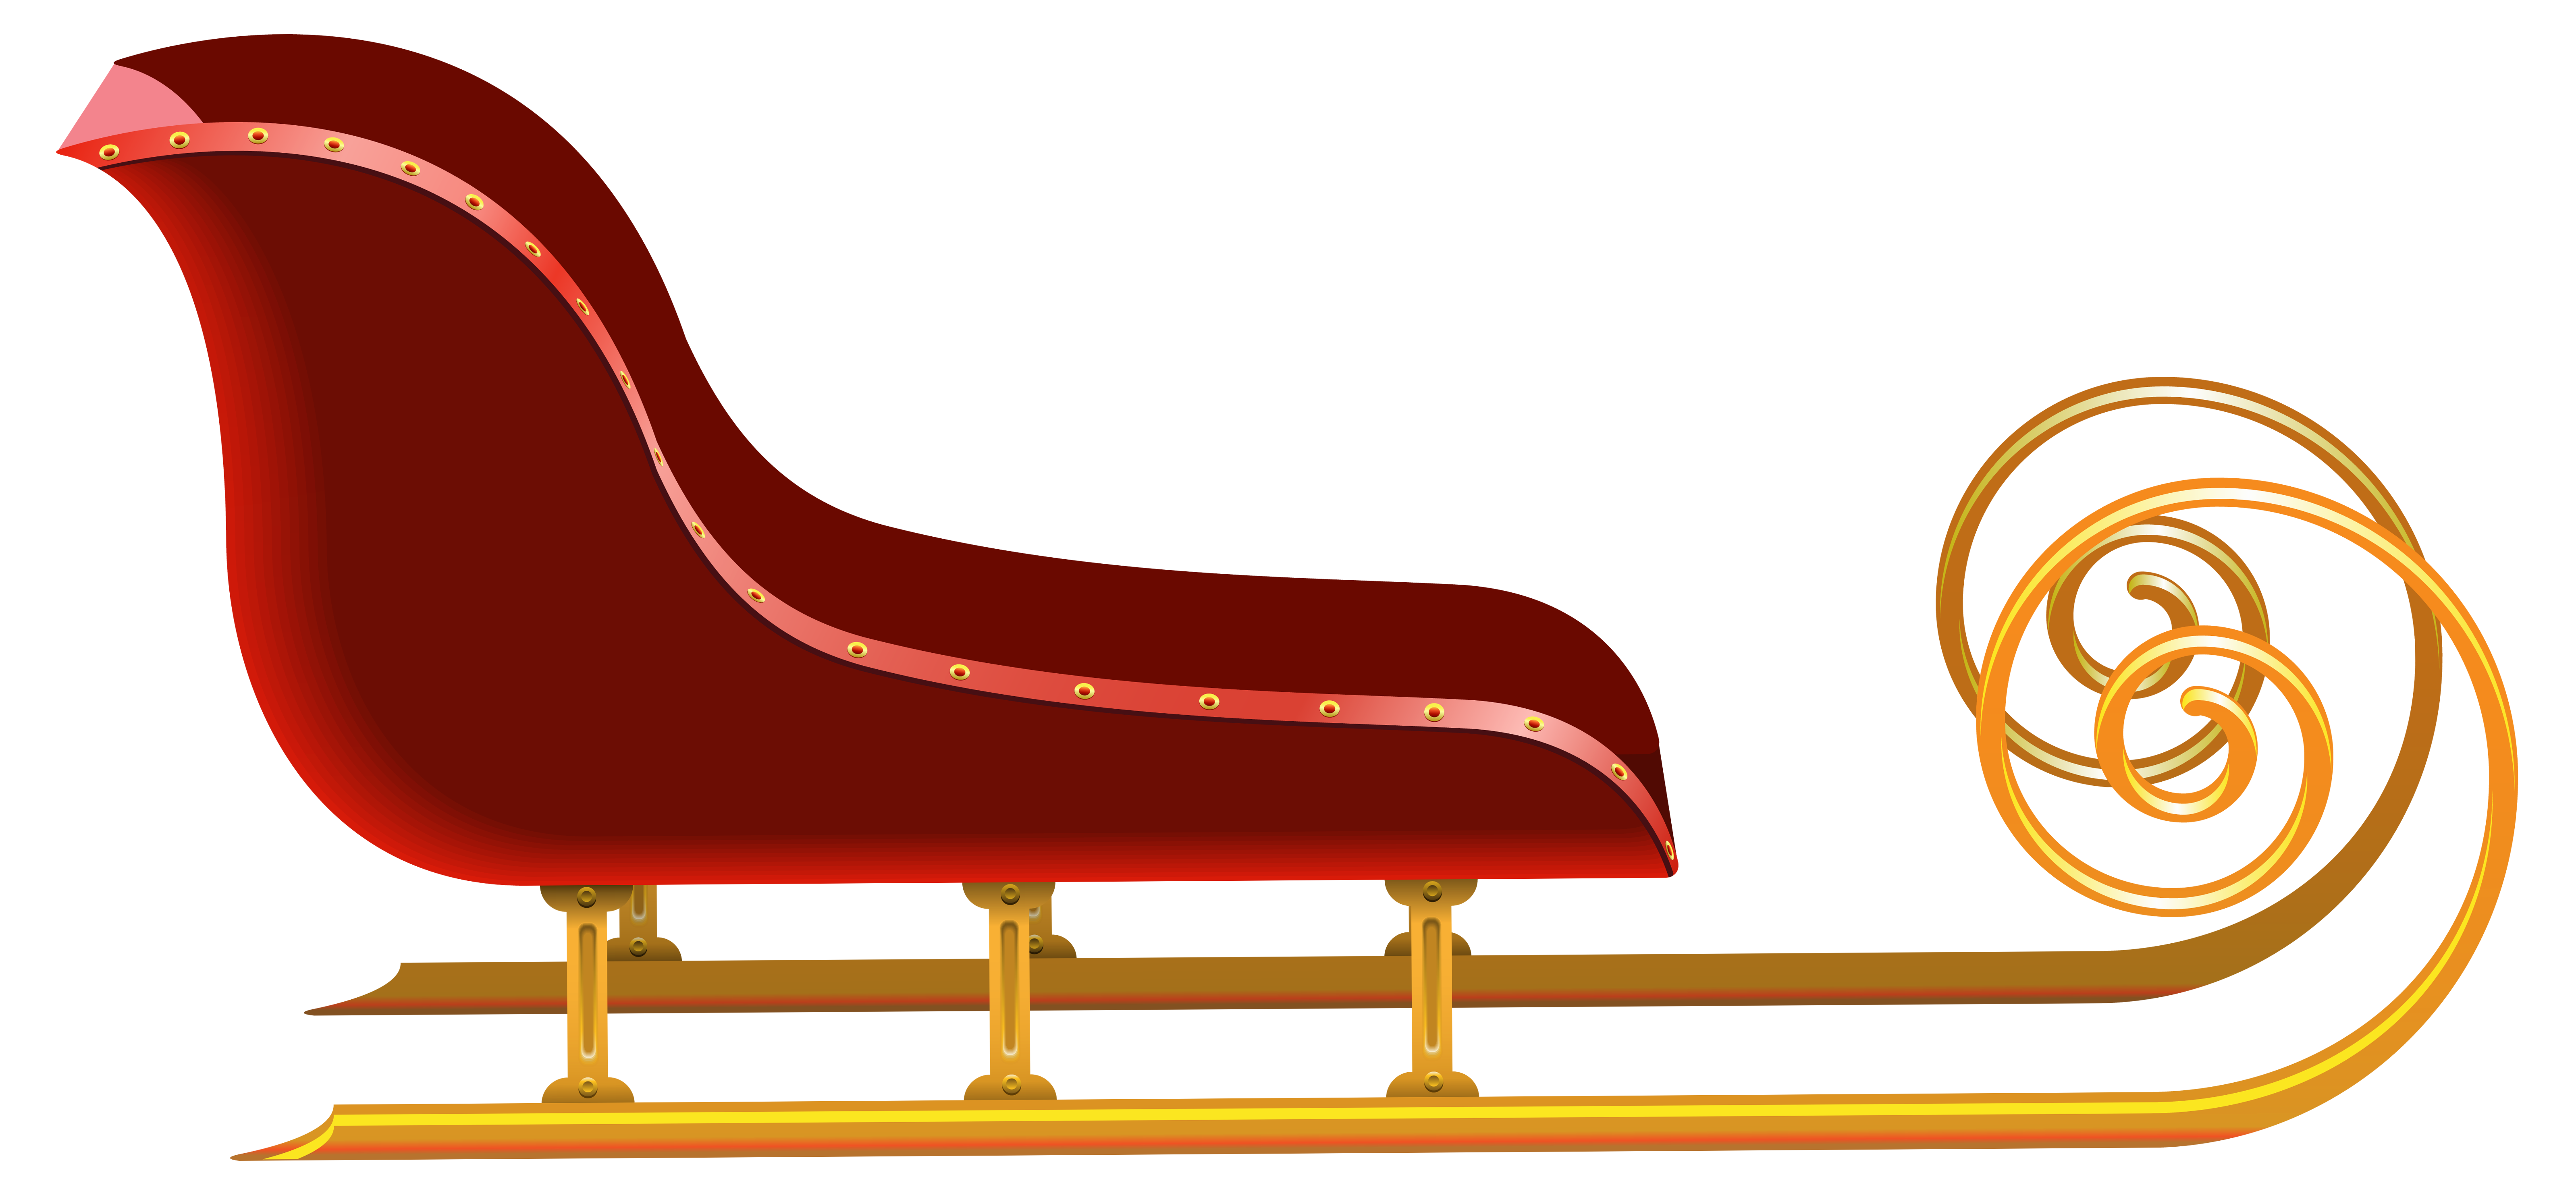 Sleigh clipart. Red png clip art